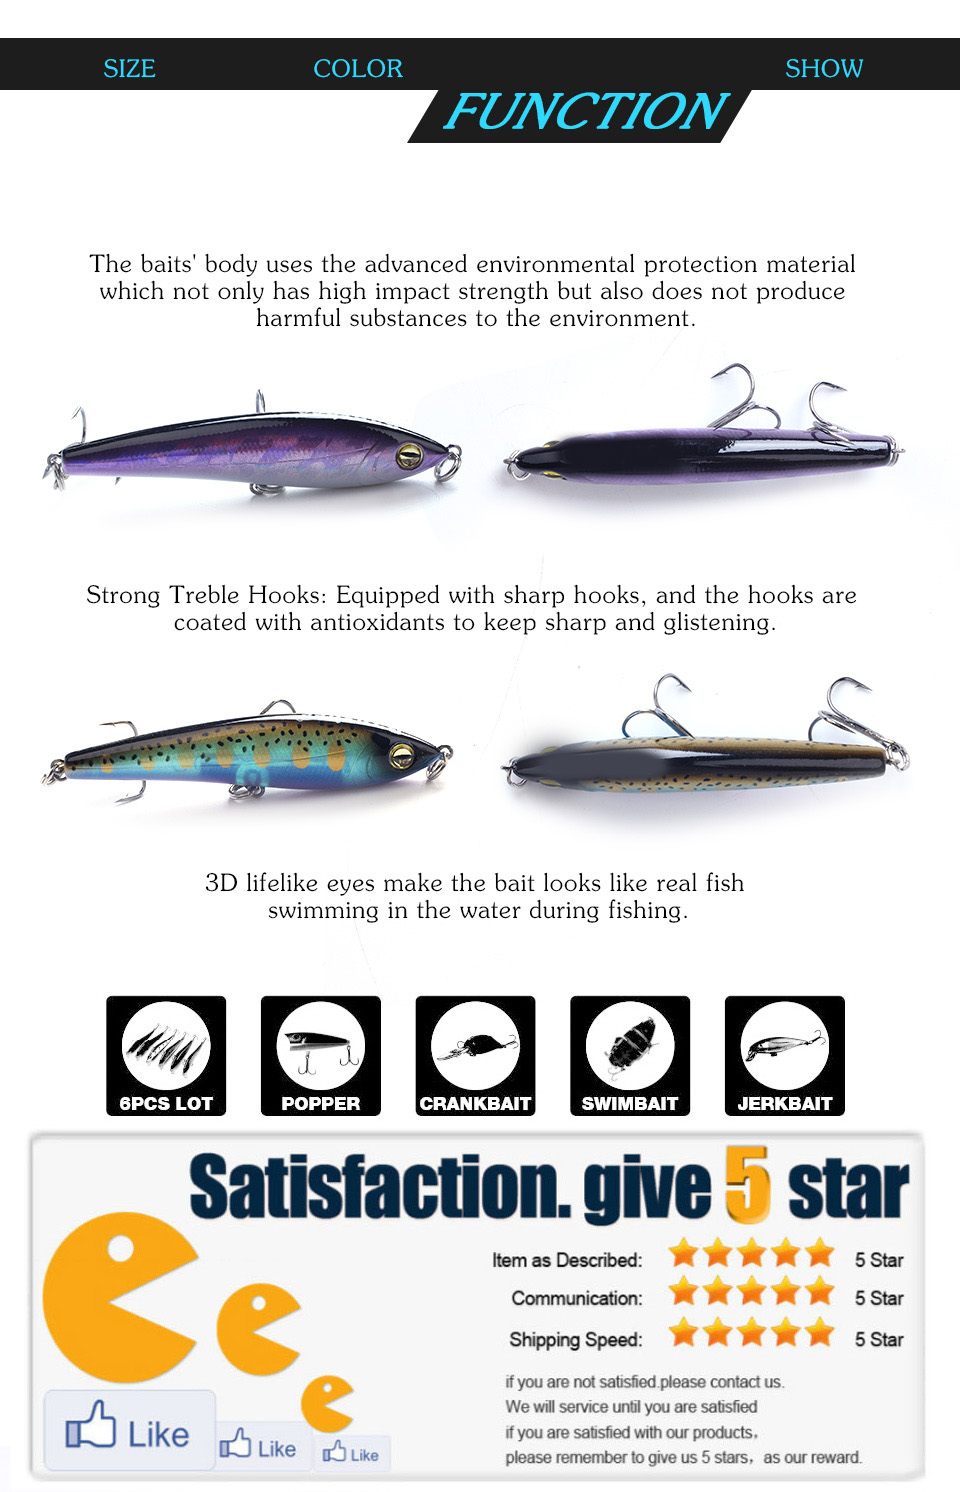 XIN-V -Oem Swimbait Manufacturer, Best Lures | Xinv-3